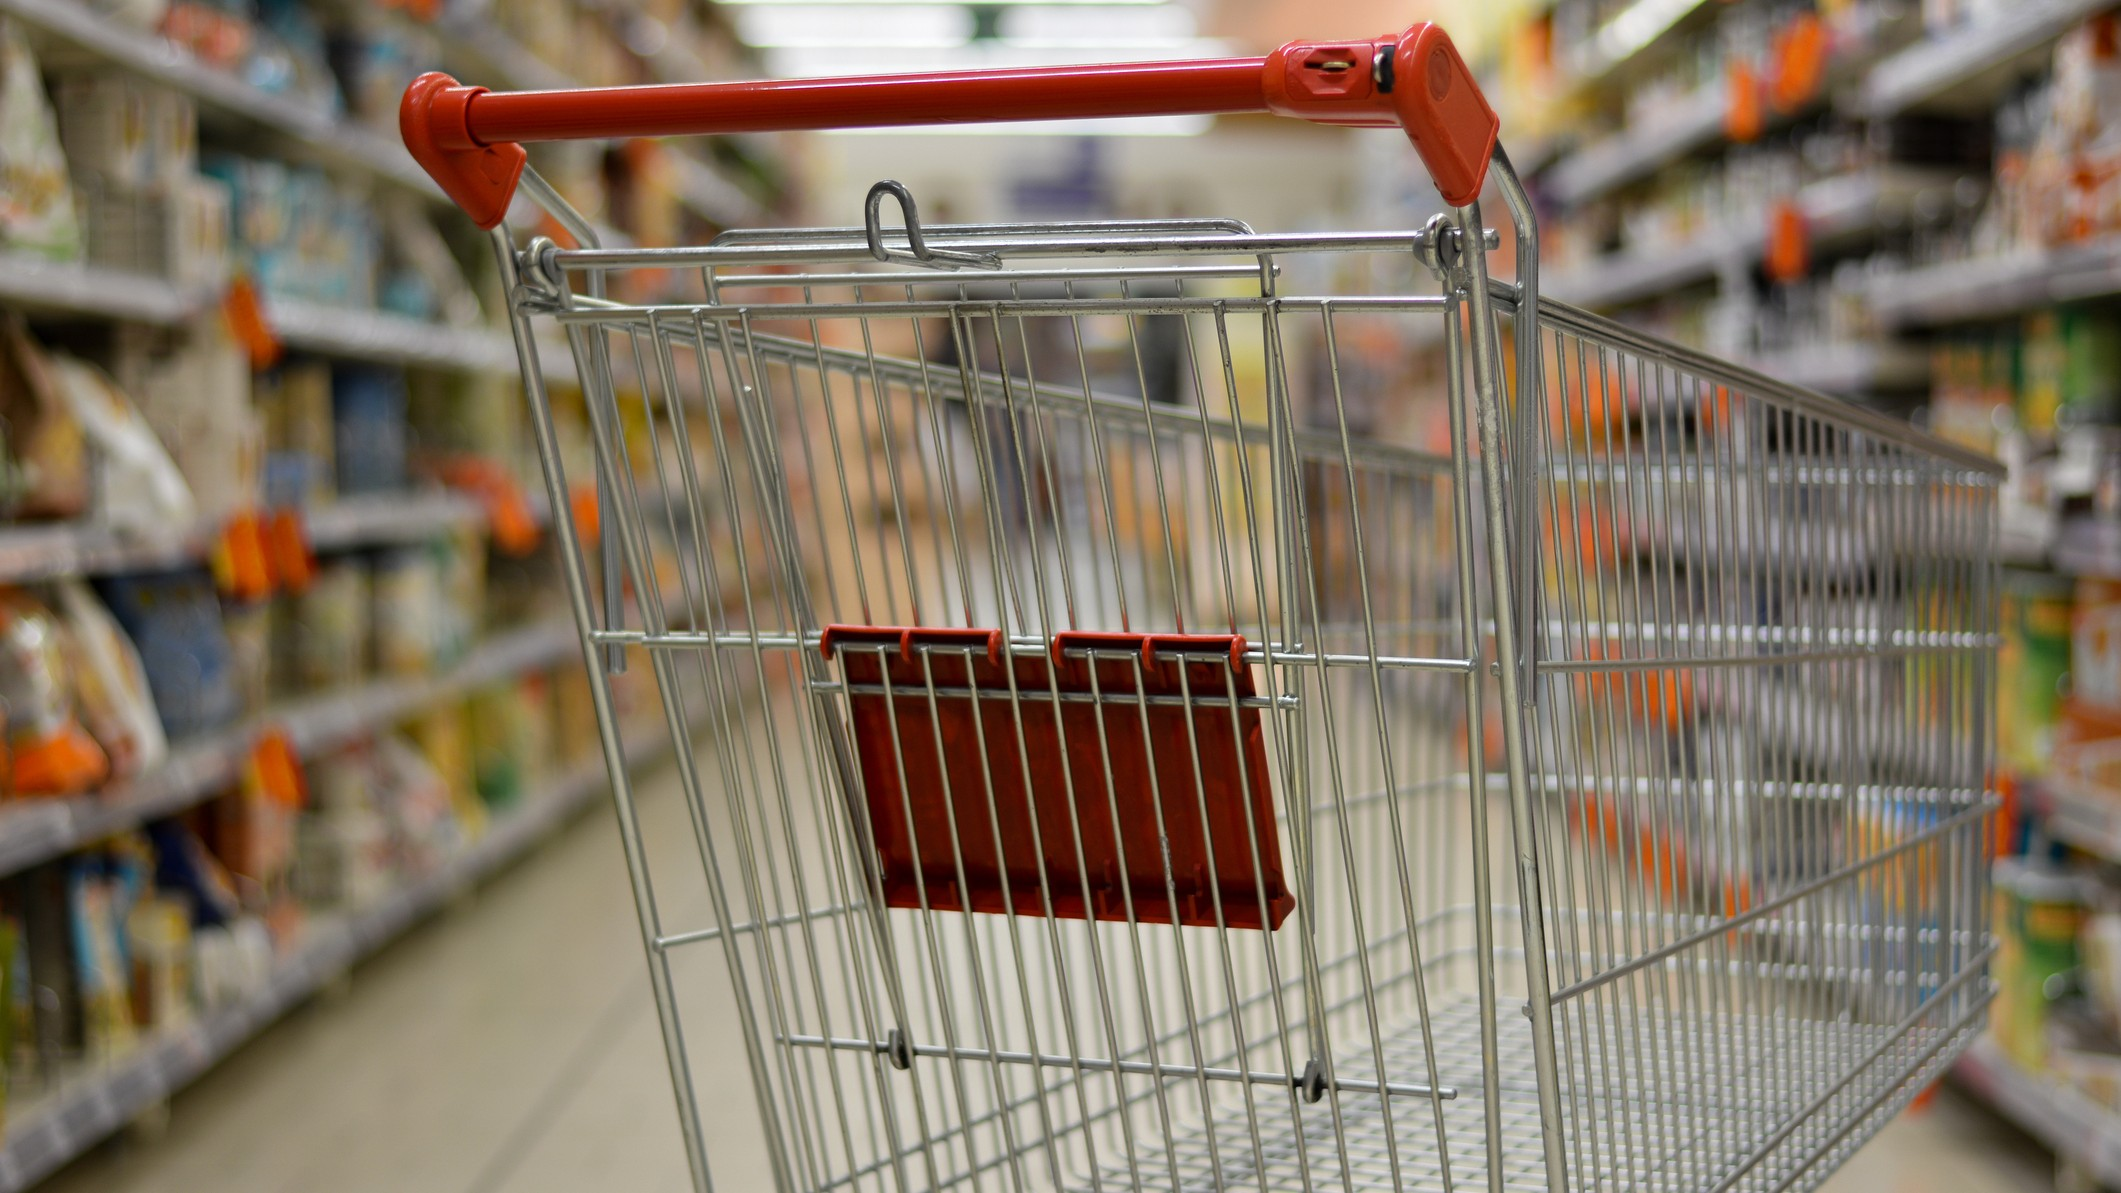 supermarket asx shares represented by shopping trolley in supermarket aisle